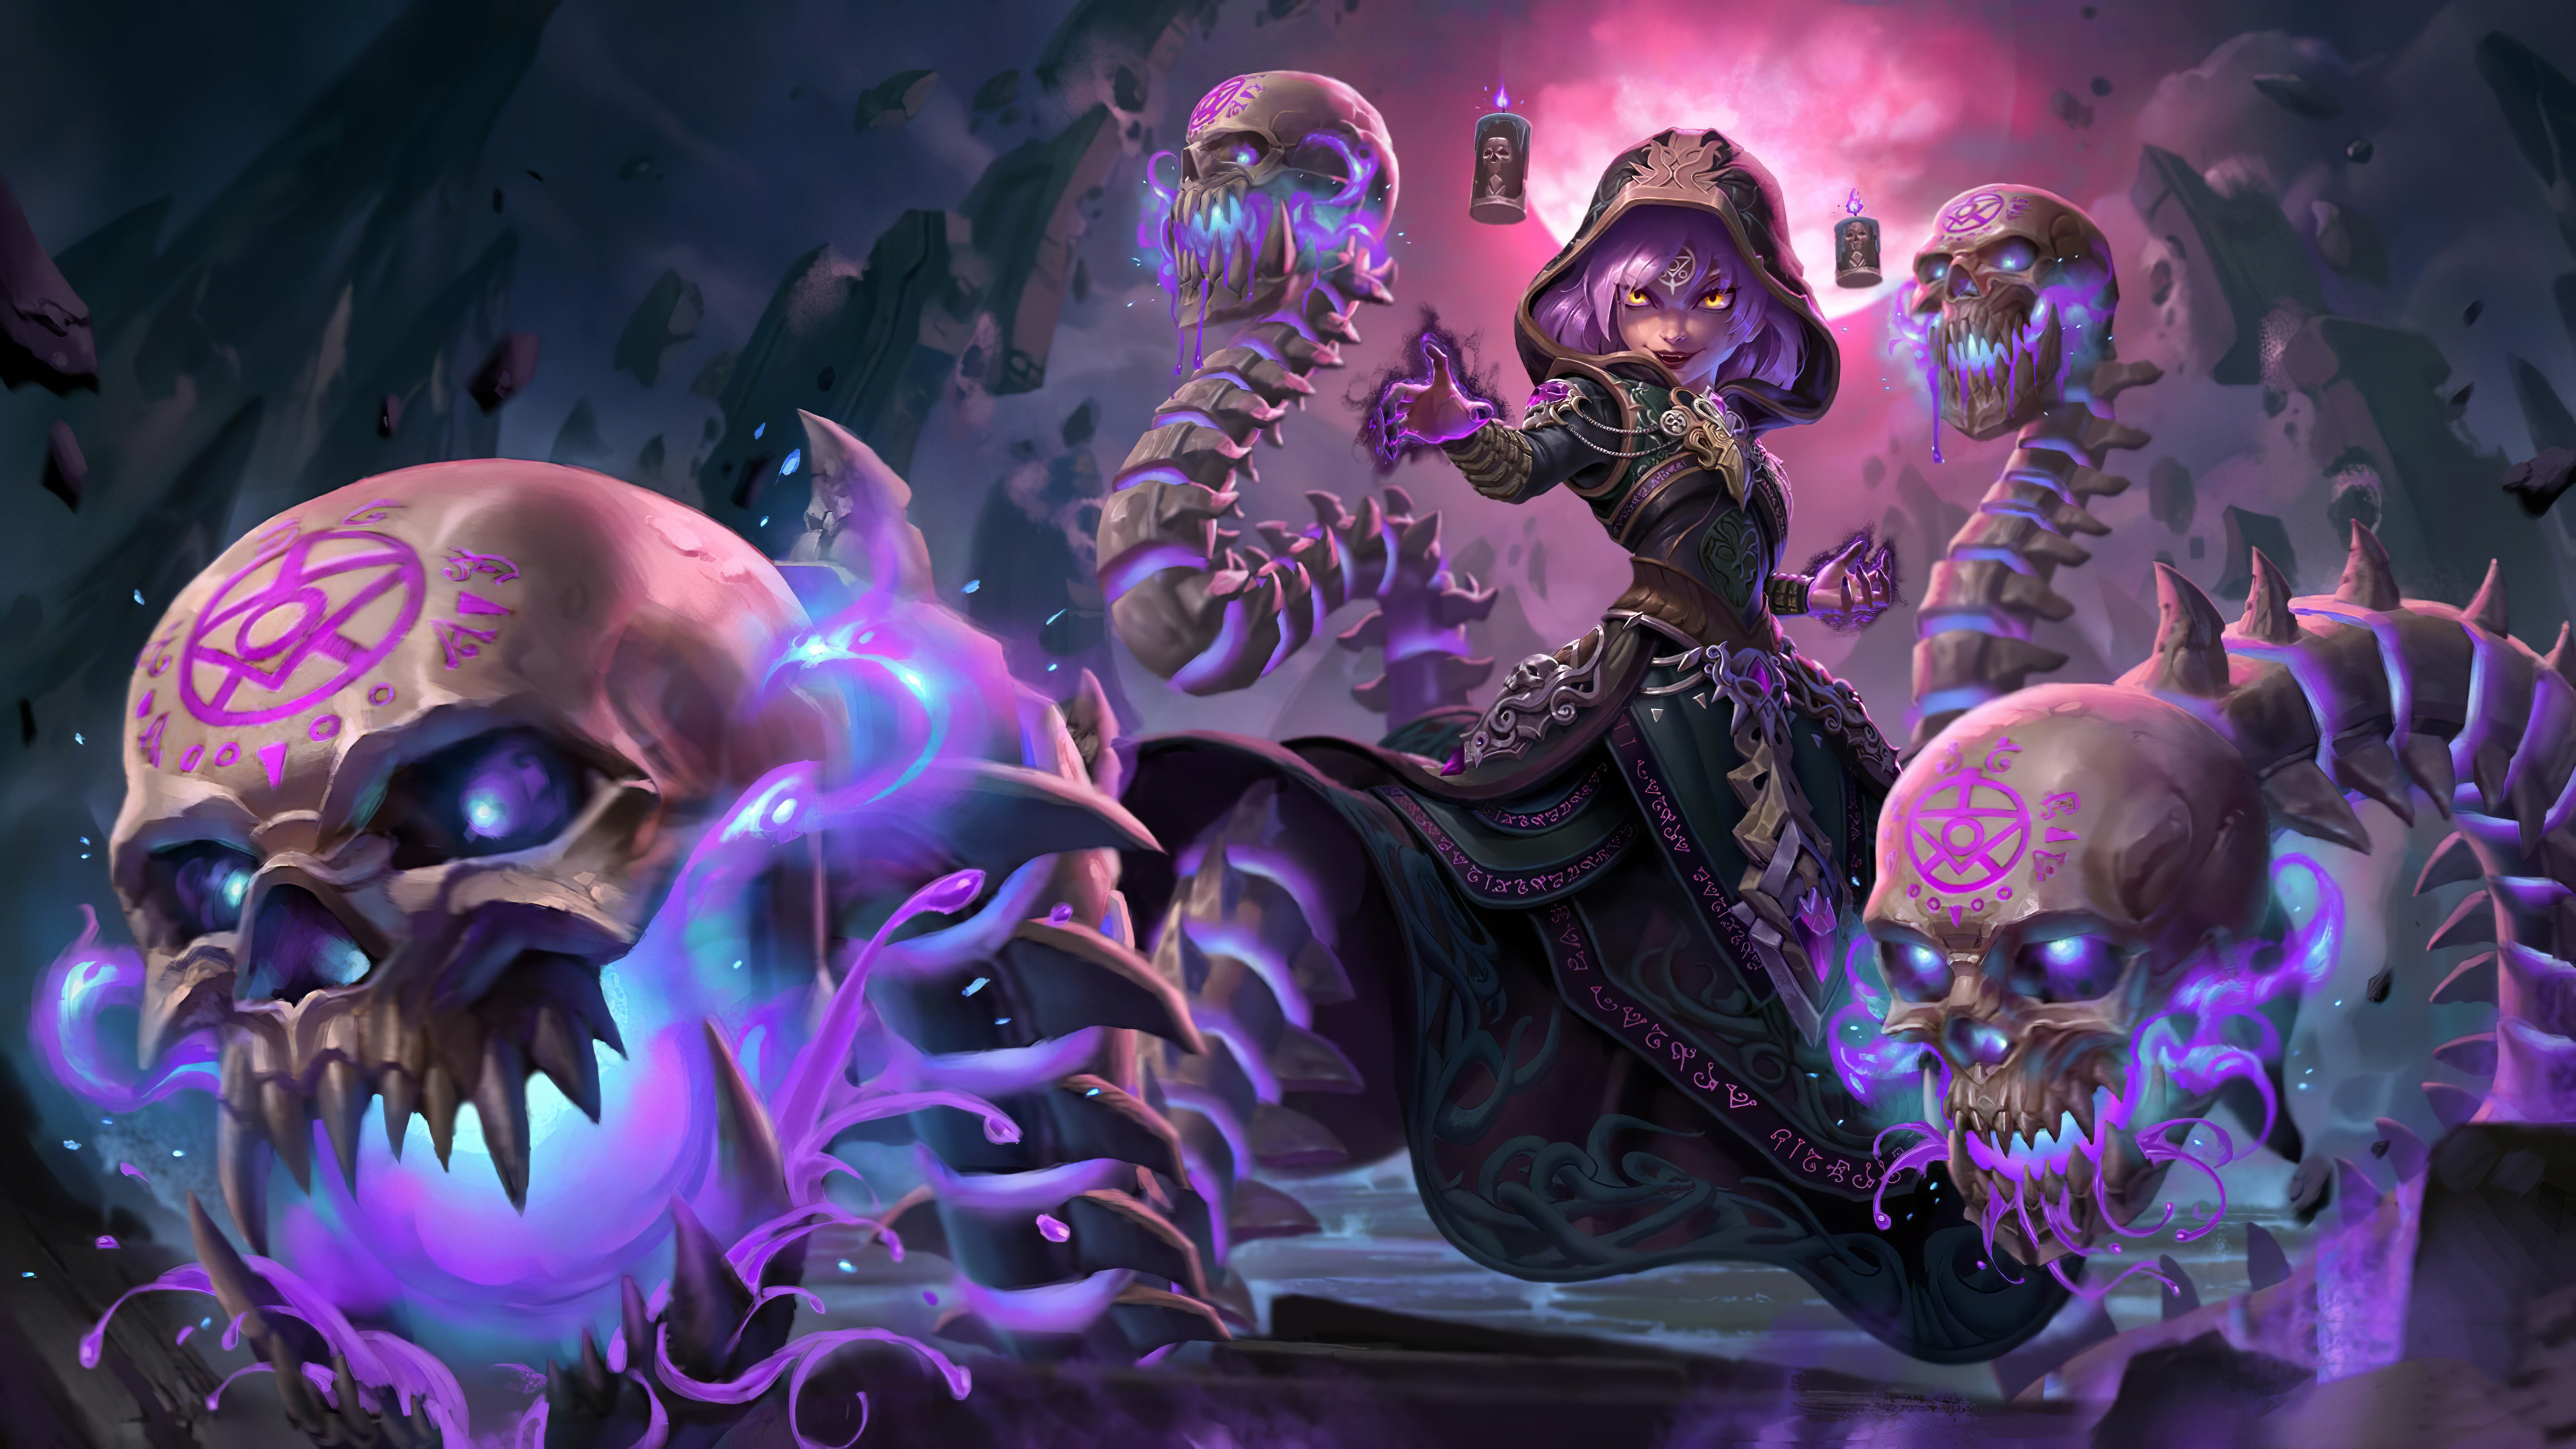 living death scylla smite 4k 4i 3840x2160 1 - Smite :Living Death Scylla - smite wallpapers 4k, Smite :Living Death Scylla 4k wallpapers